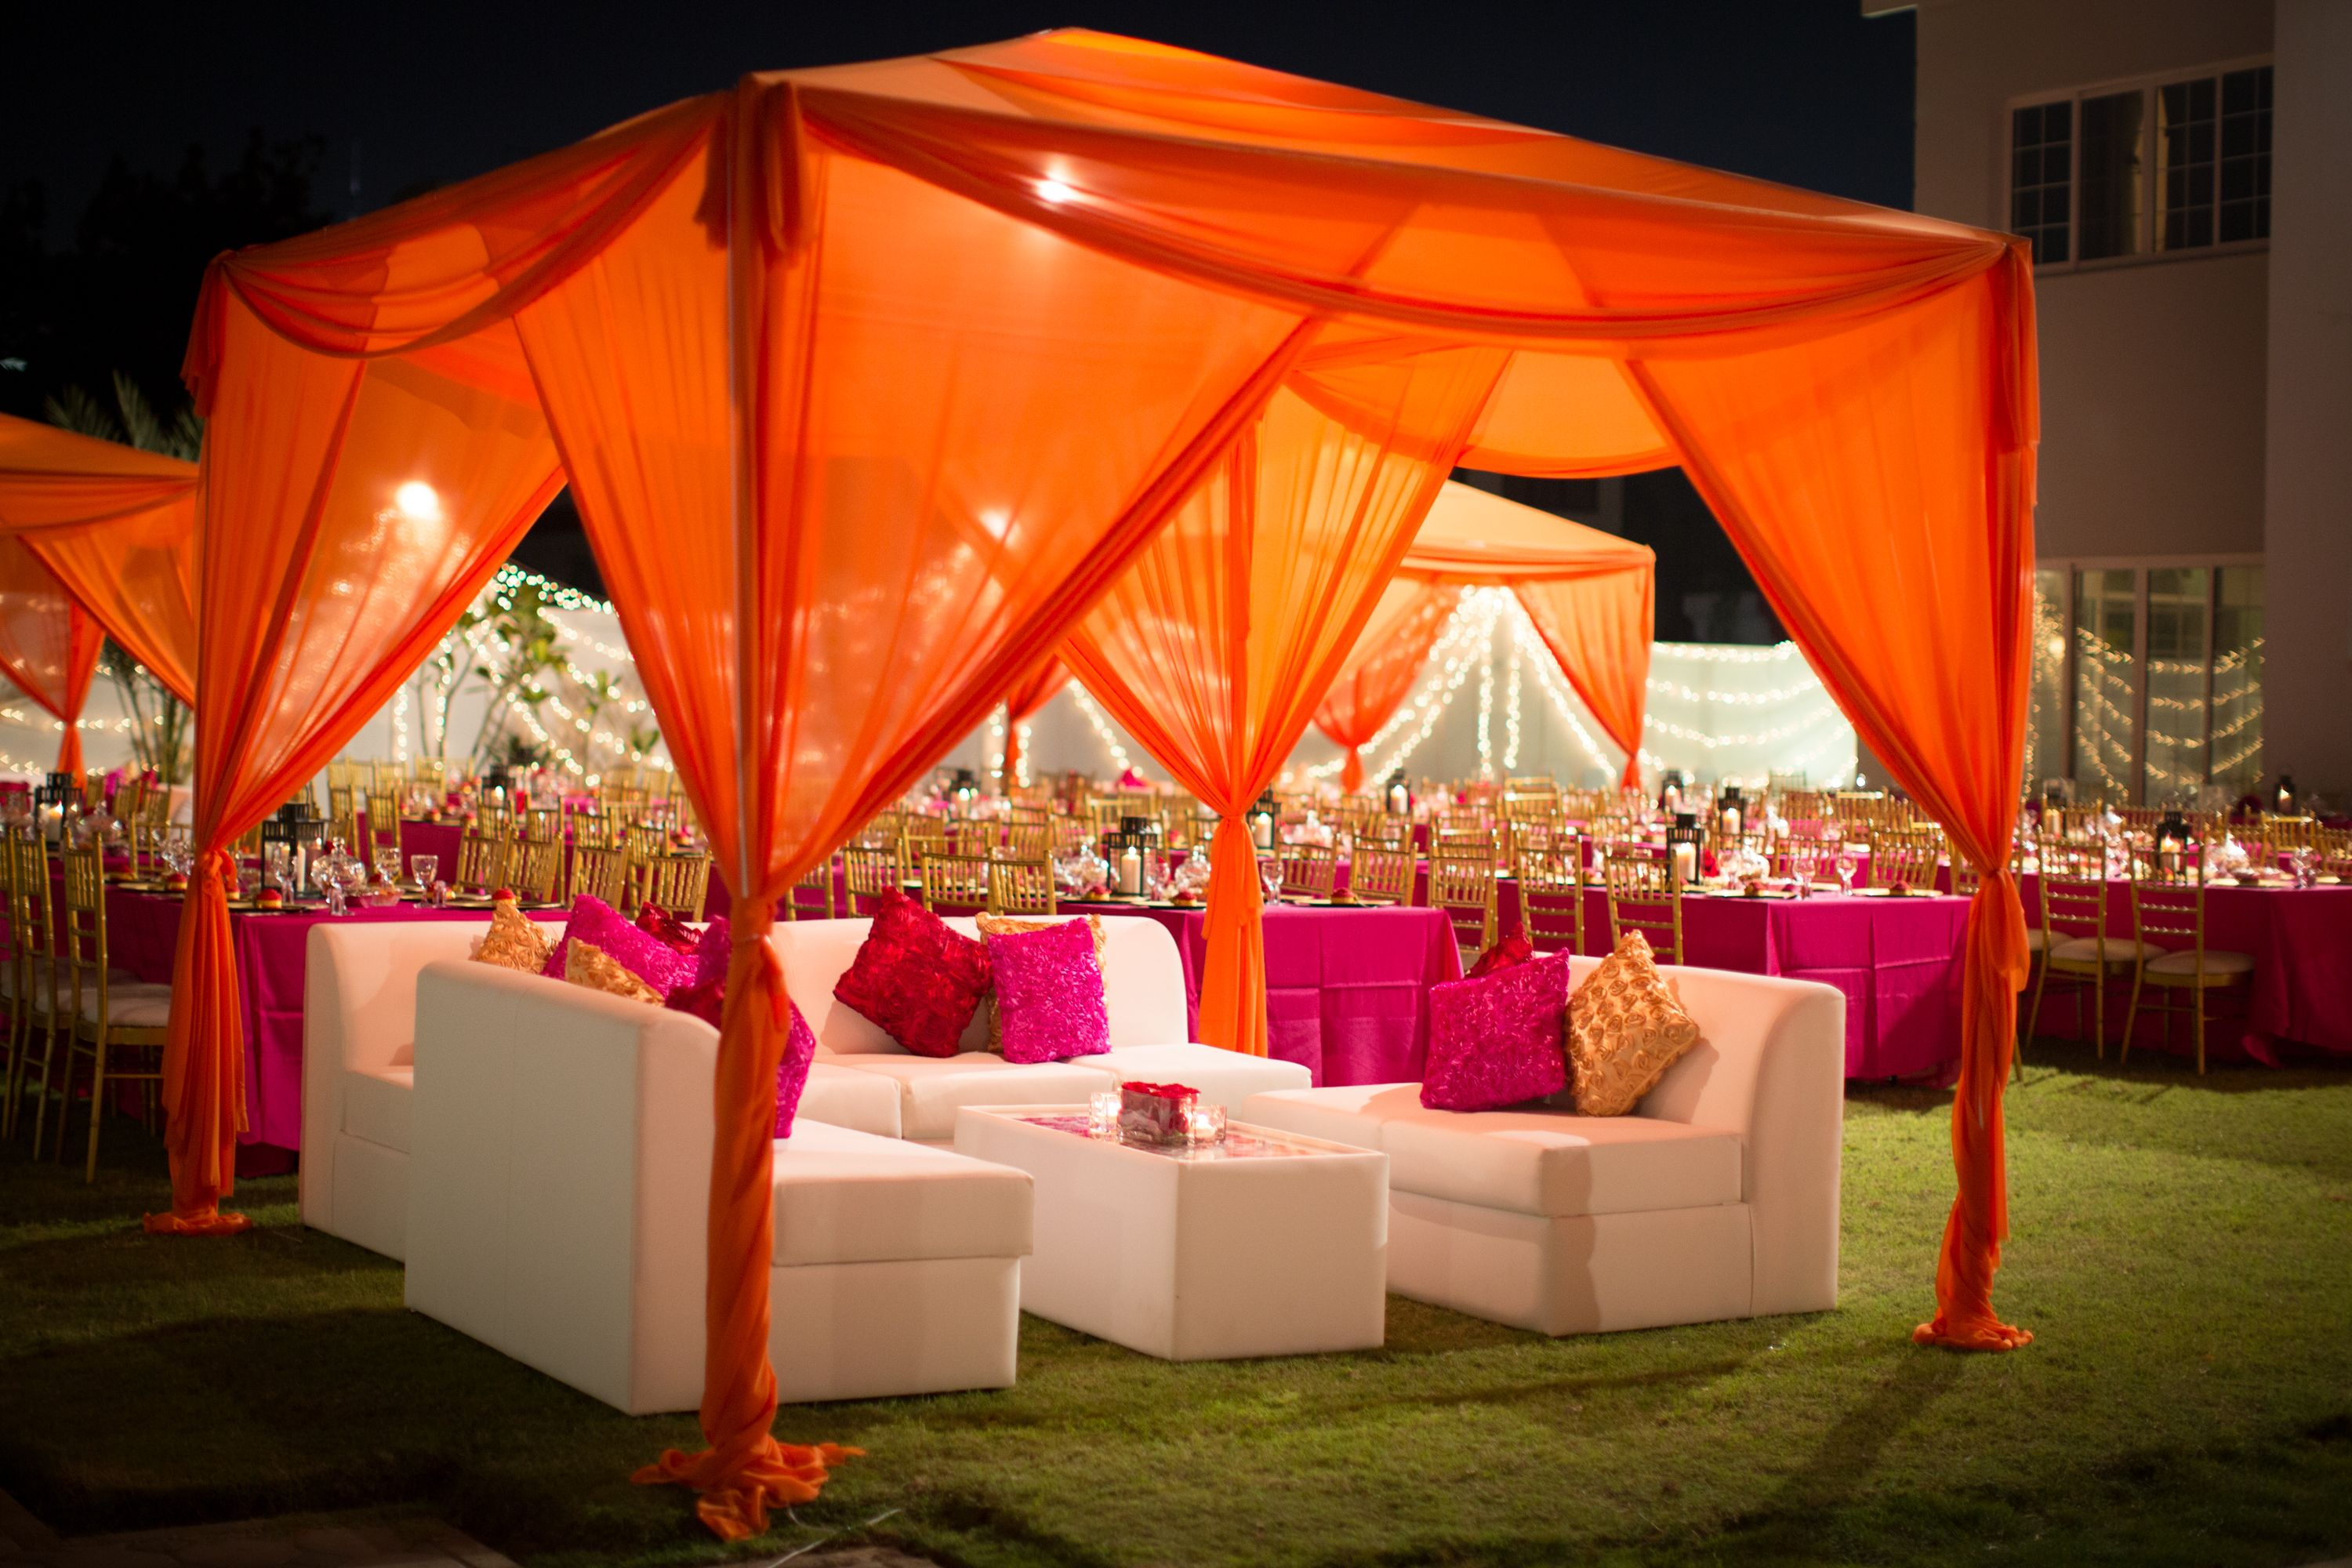 Arabian Wedding Lounge Tent Seating Wedding Tent Decorations